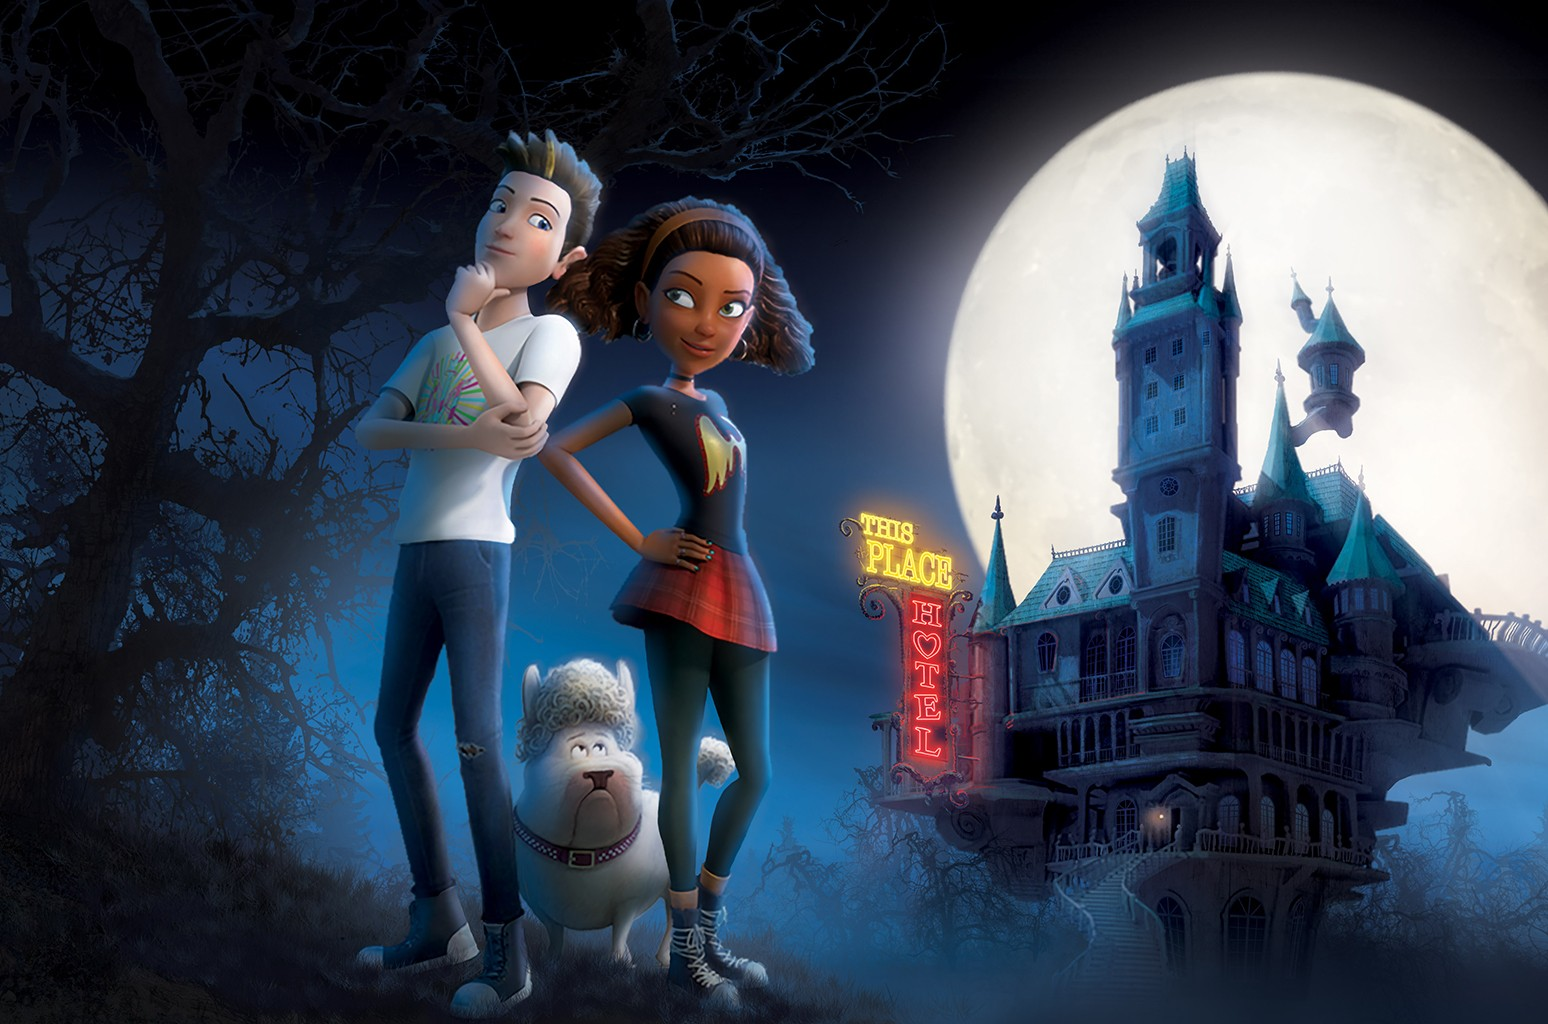 Michael Jackson's Halloween, a new one-hour animated adventure with Michael Jackson's acclaimed music as its soundtrack, airing this fall on the CBS Television Network.